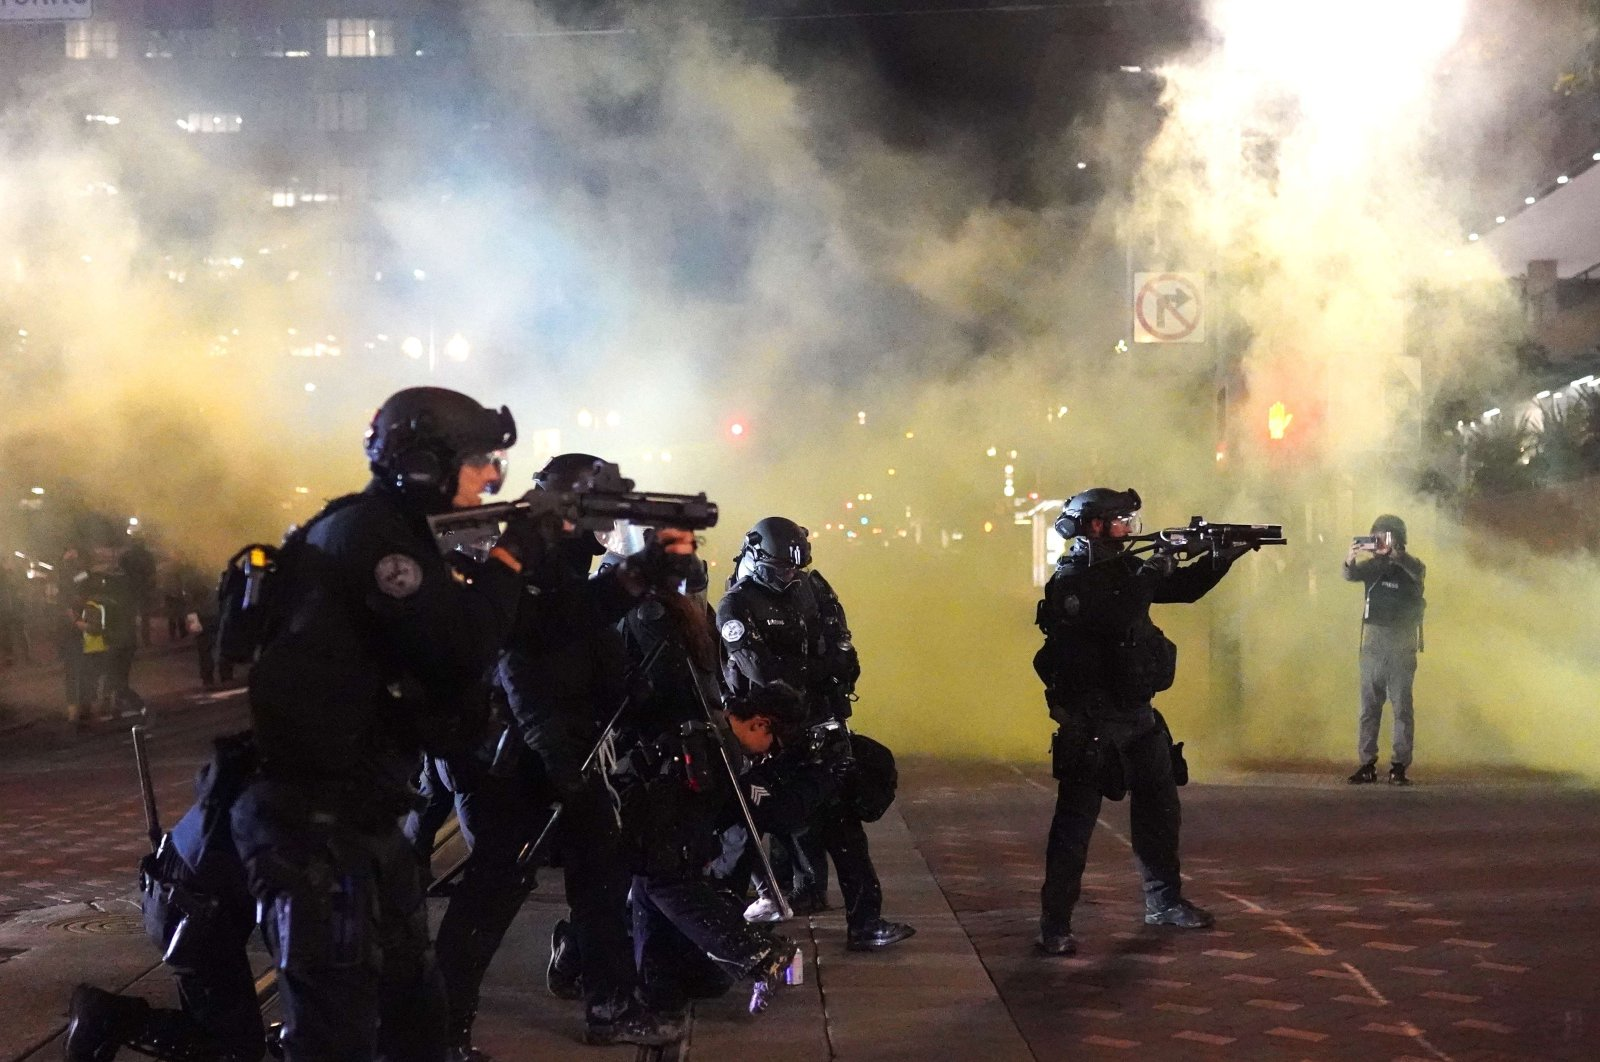 Portland police officers fire nonlethal rounds through smoke while dispersing protesters from Portland City Hall, Portland, Oregon, Aug. 25, 2020. (AFP Photo)